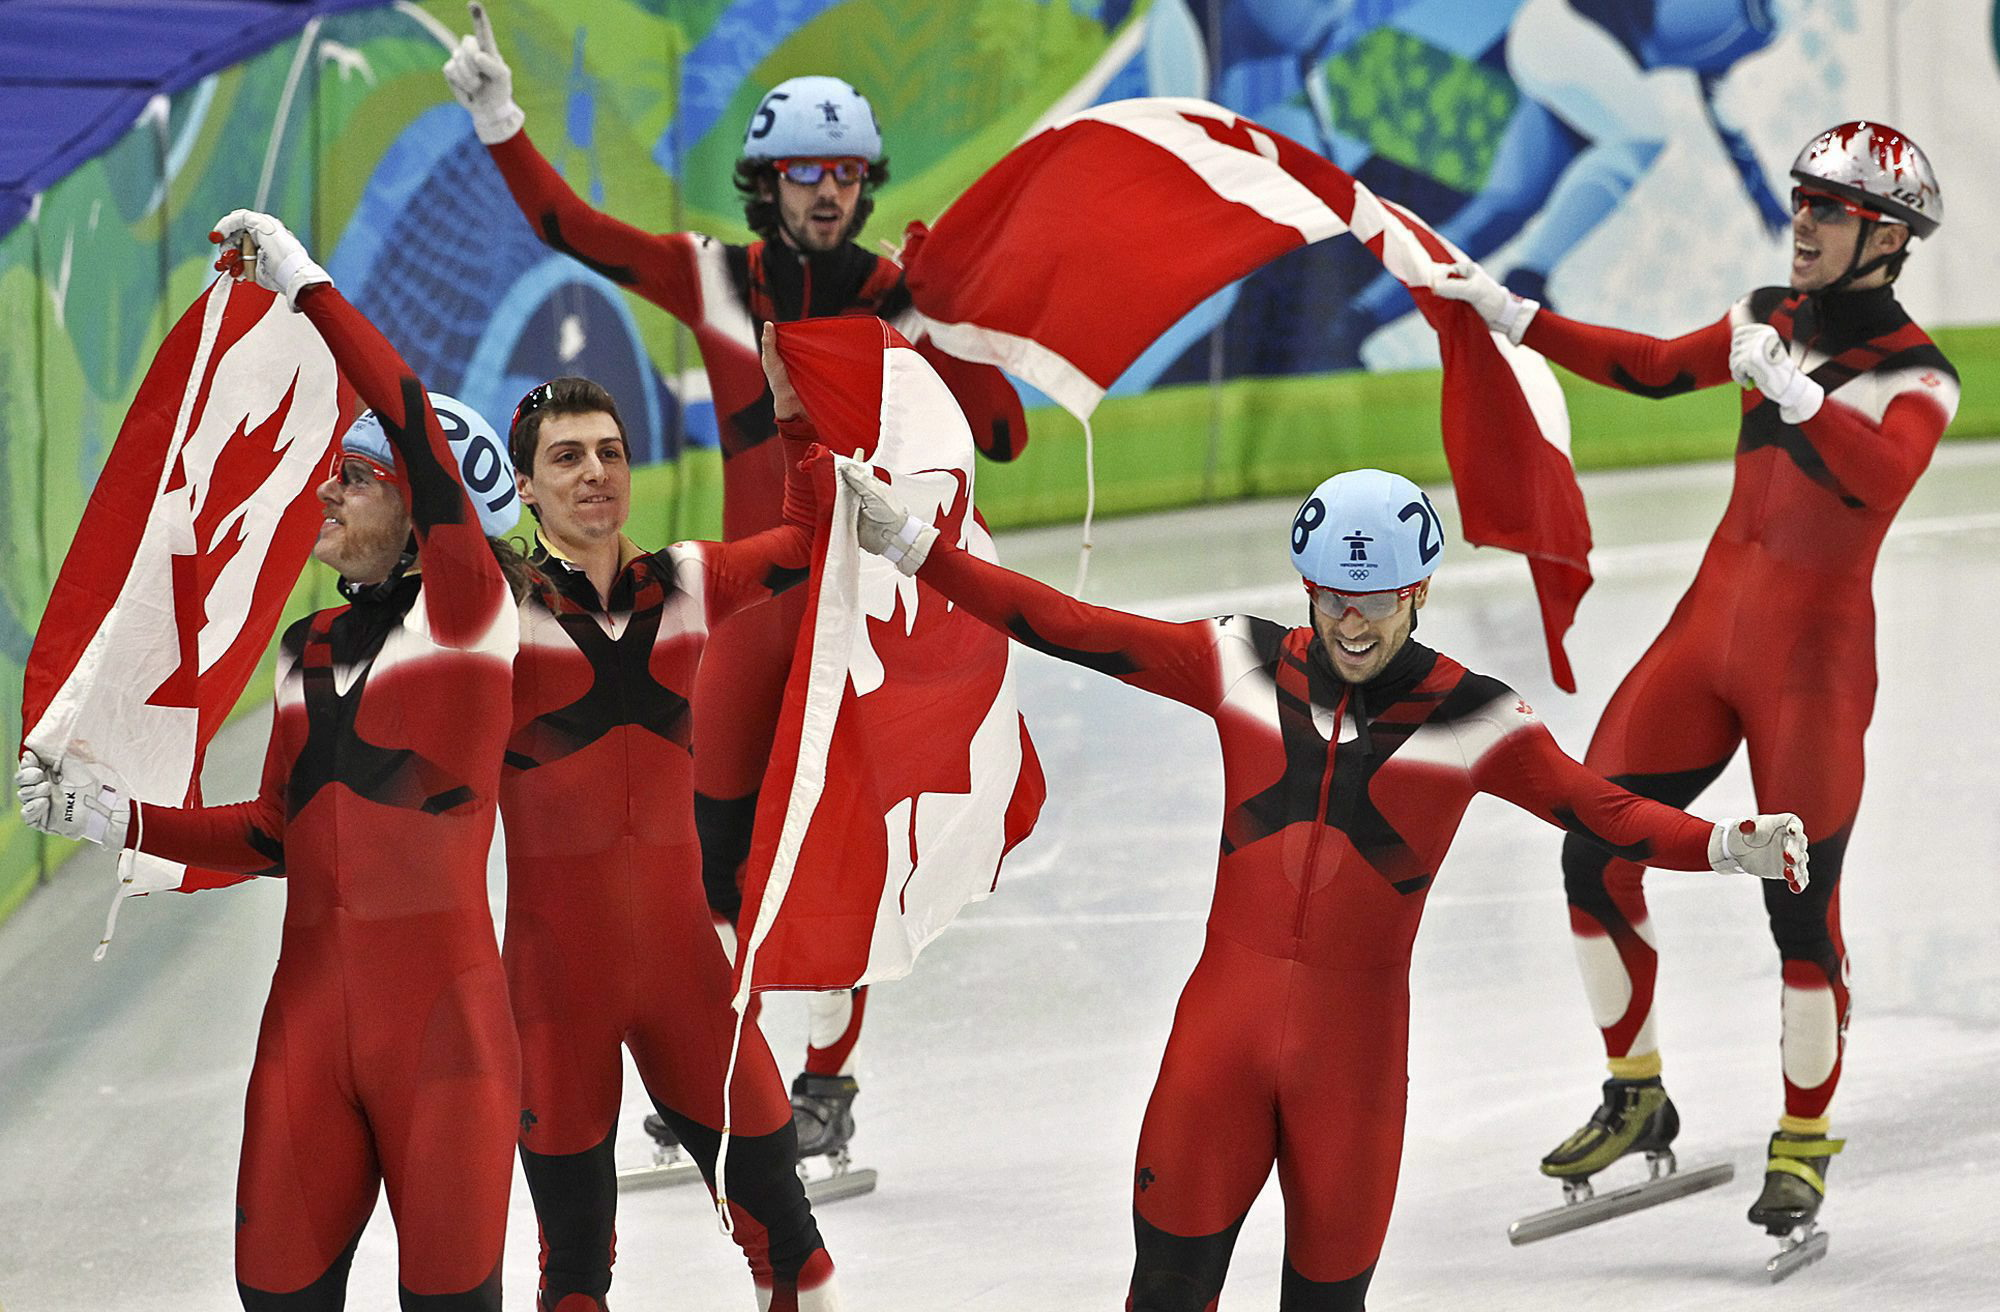 Short track speed skaters carry Canadian flag